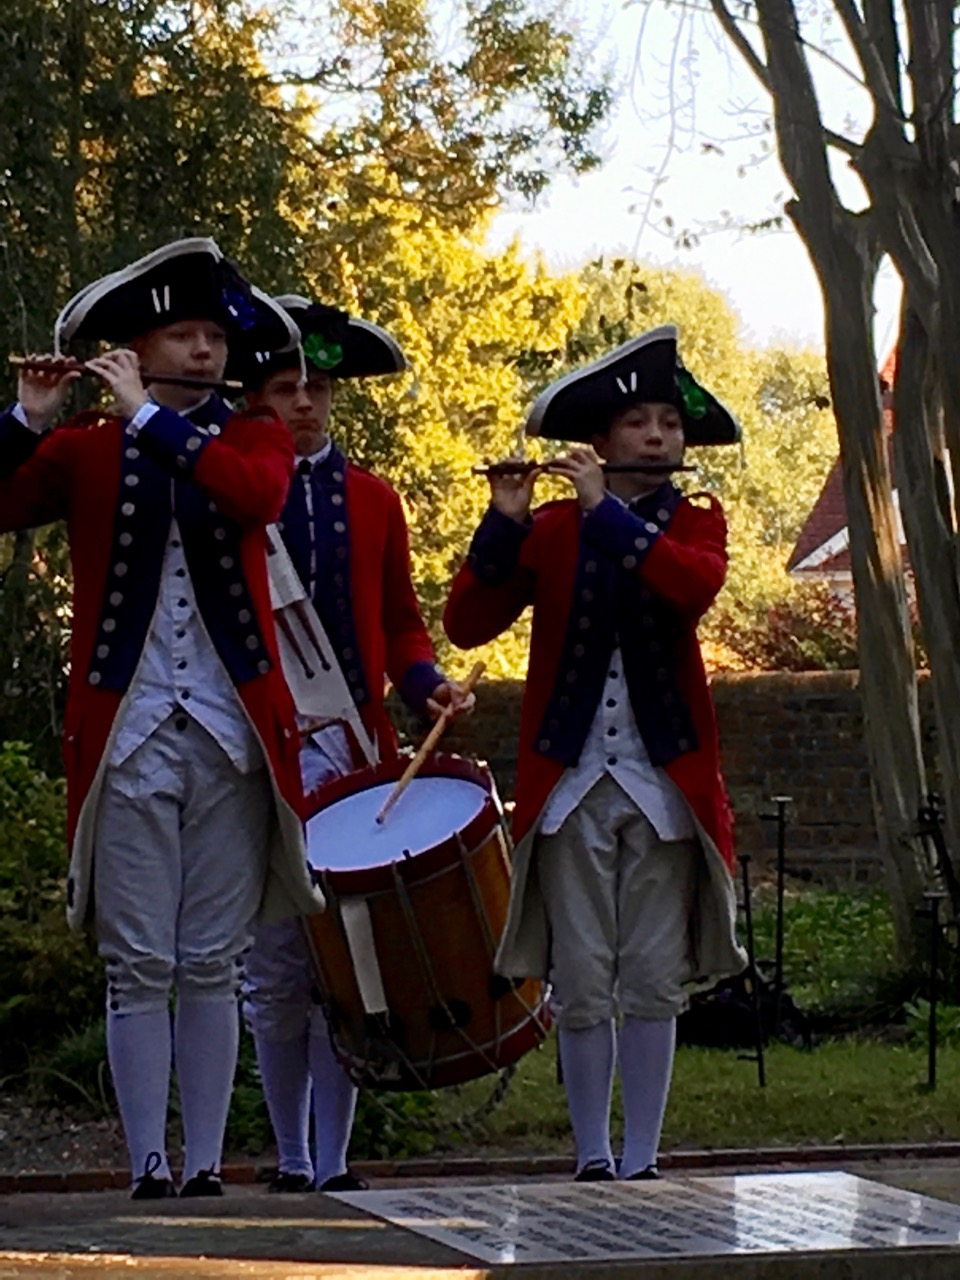 Yorktown Fife and Drum Corp performs at the beginning of the ceremony